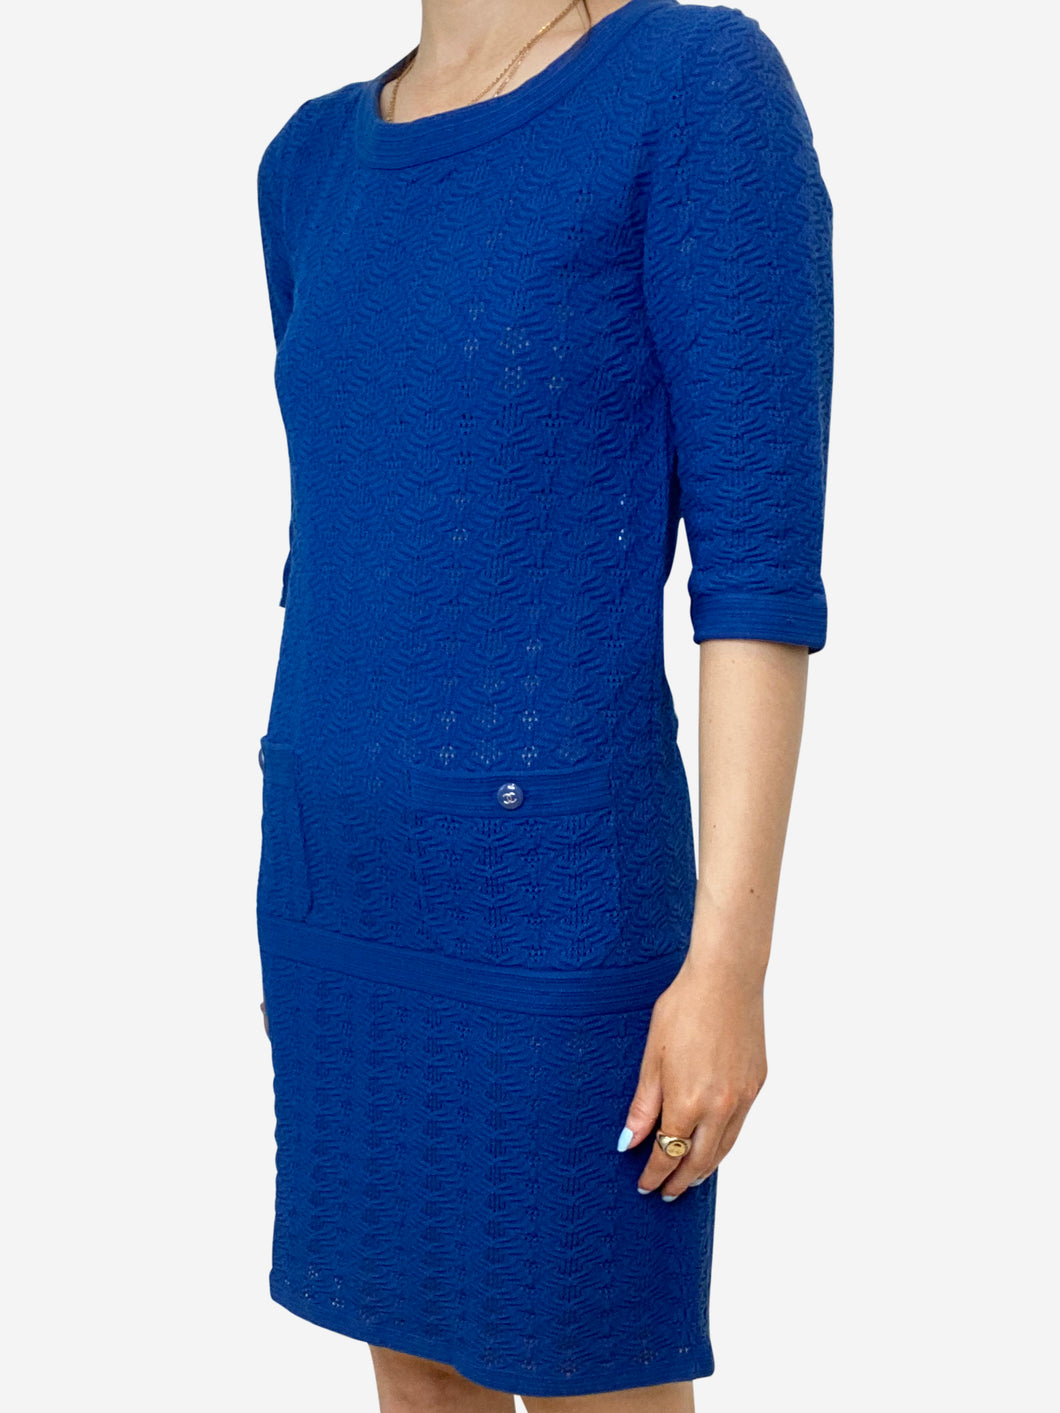 Blue knitted short sleeve dress - size FR 34